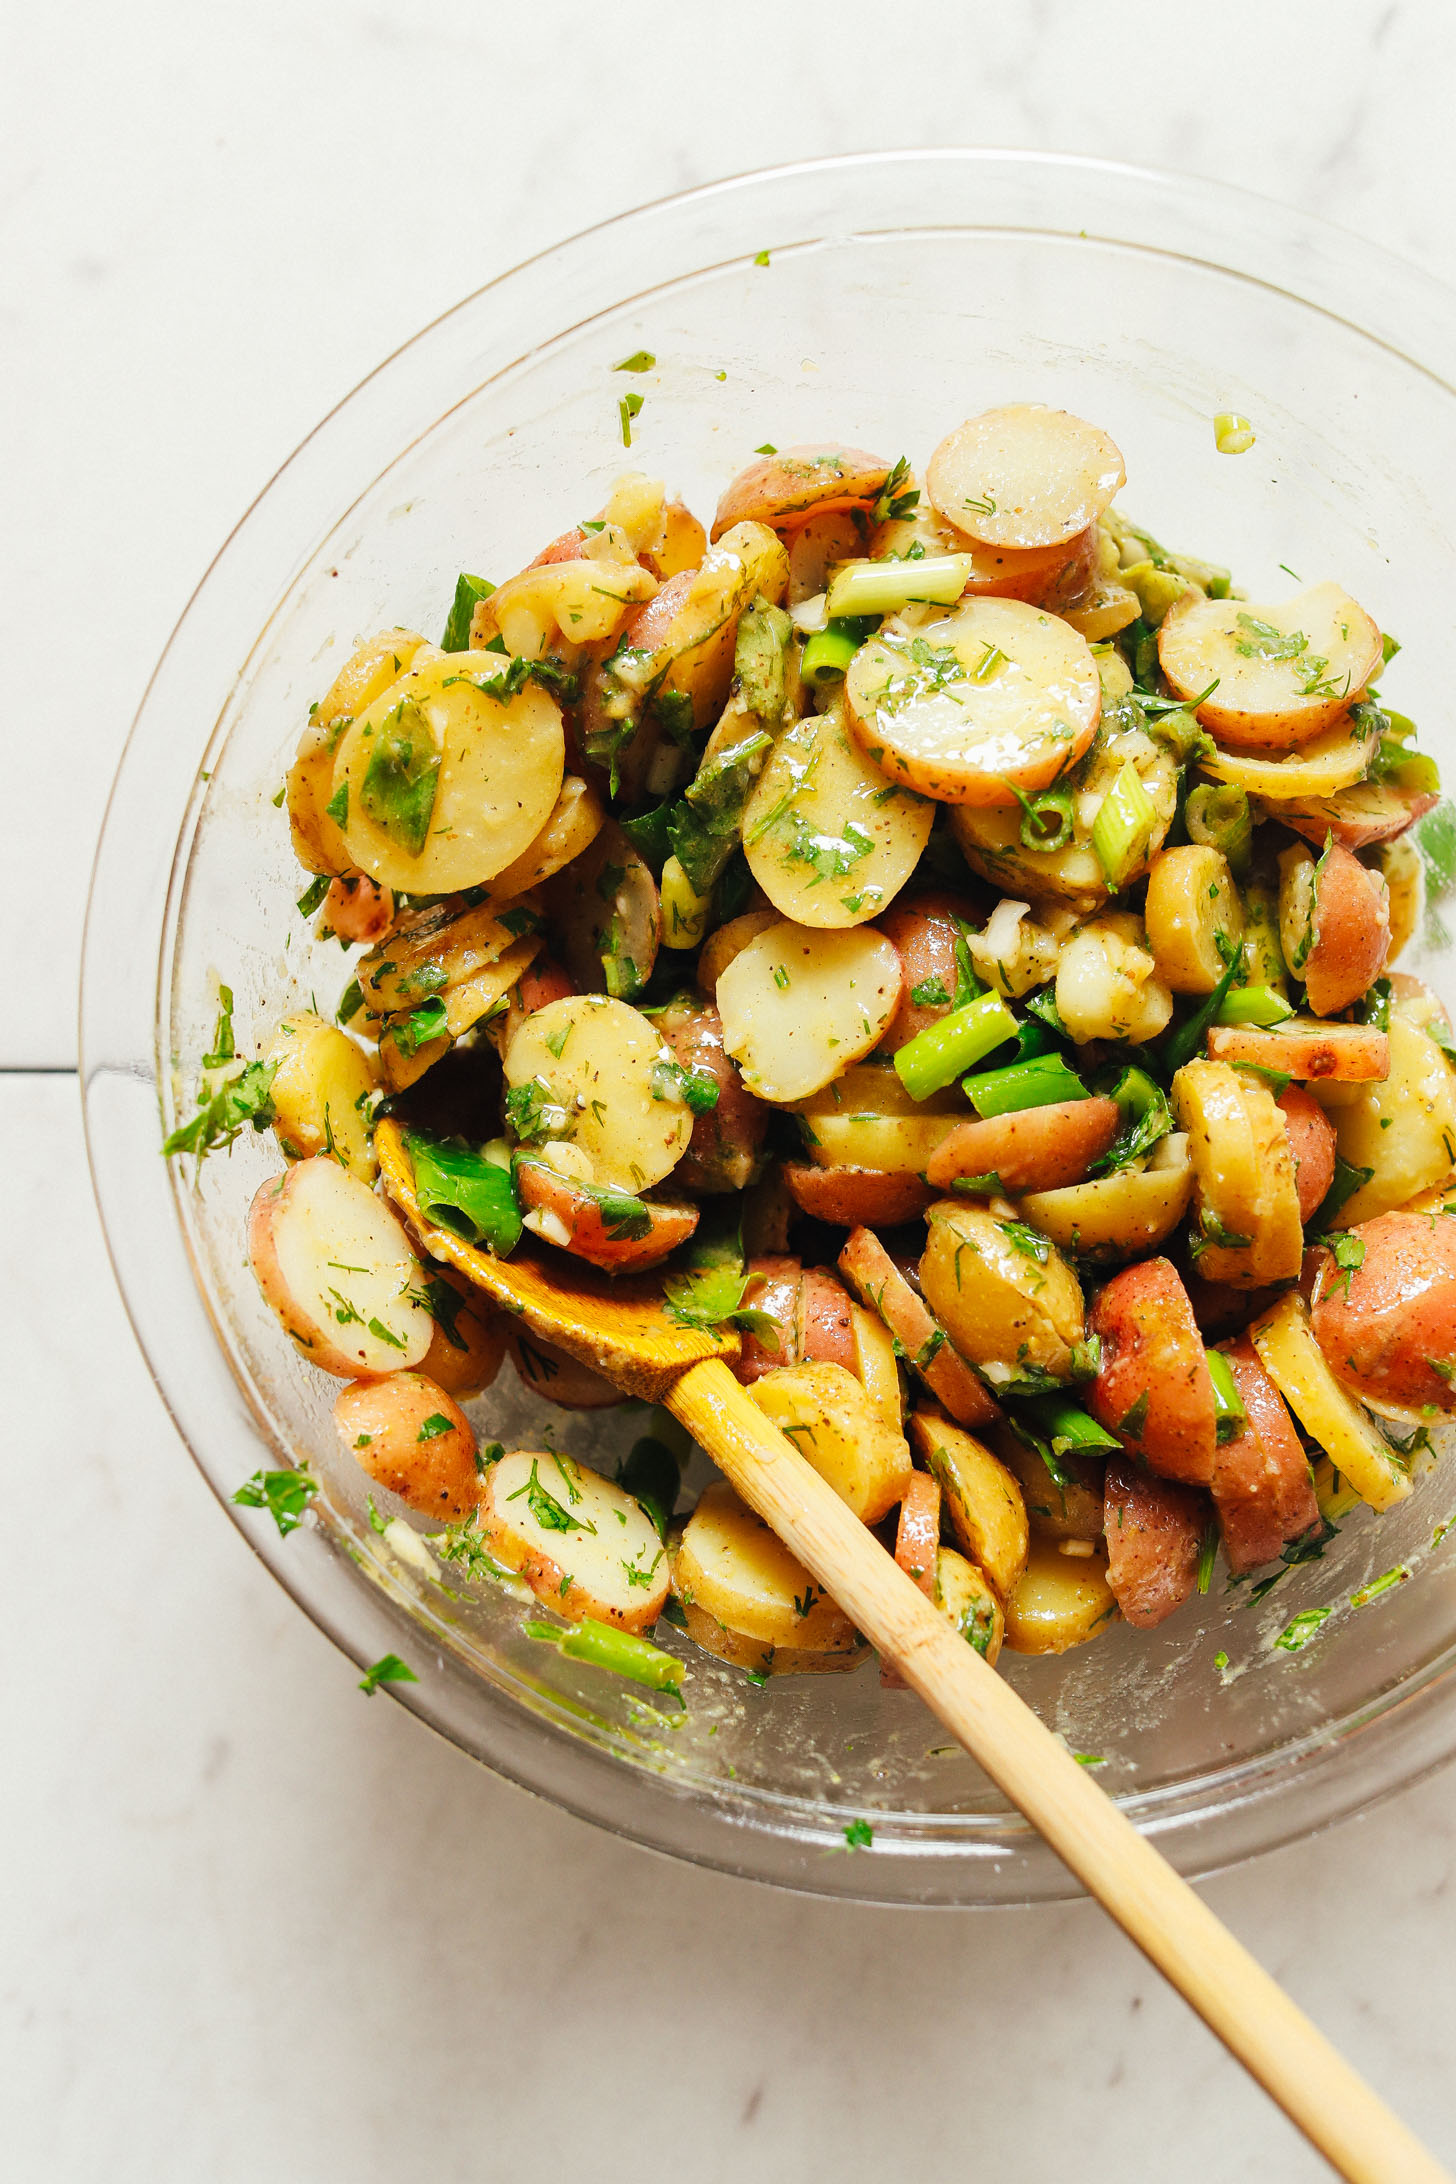 Bowl of our freshly mixed French Style Potato Salad recipe